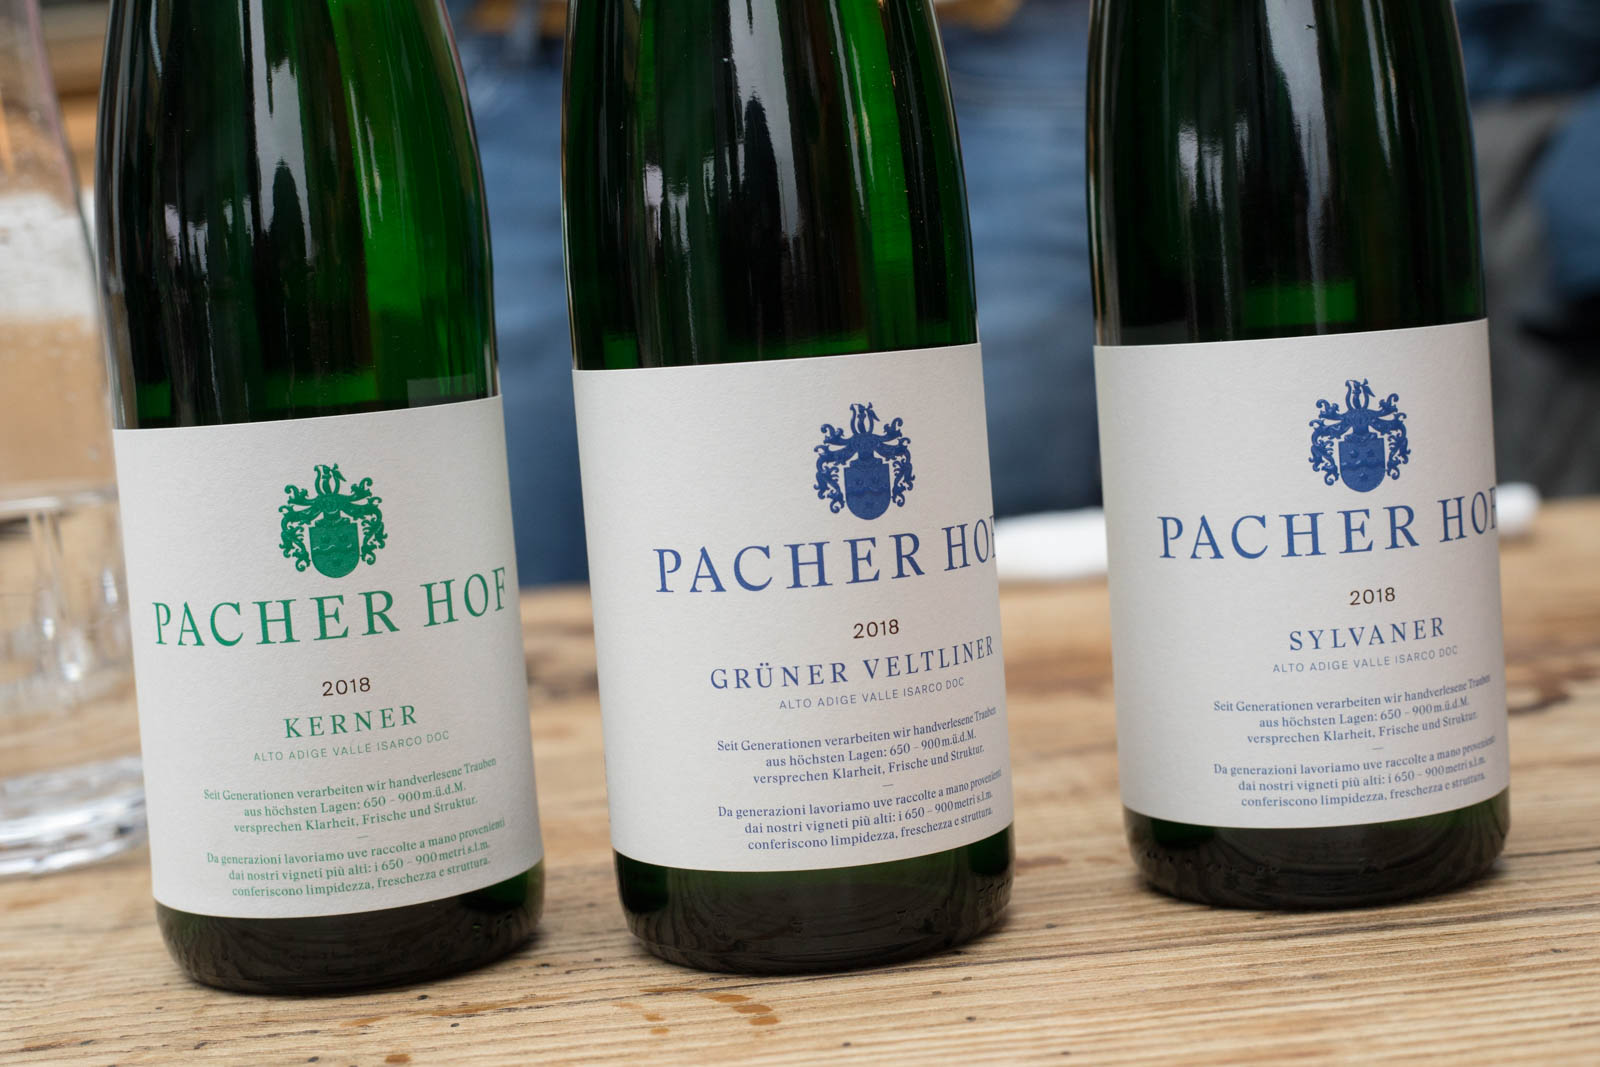 The wines of Pacherhof. ©Kevin Day/Opening a Bottle